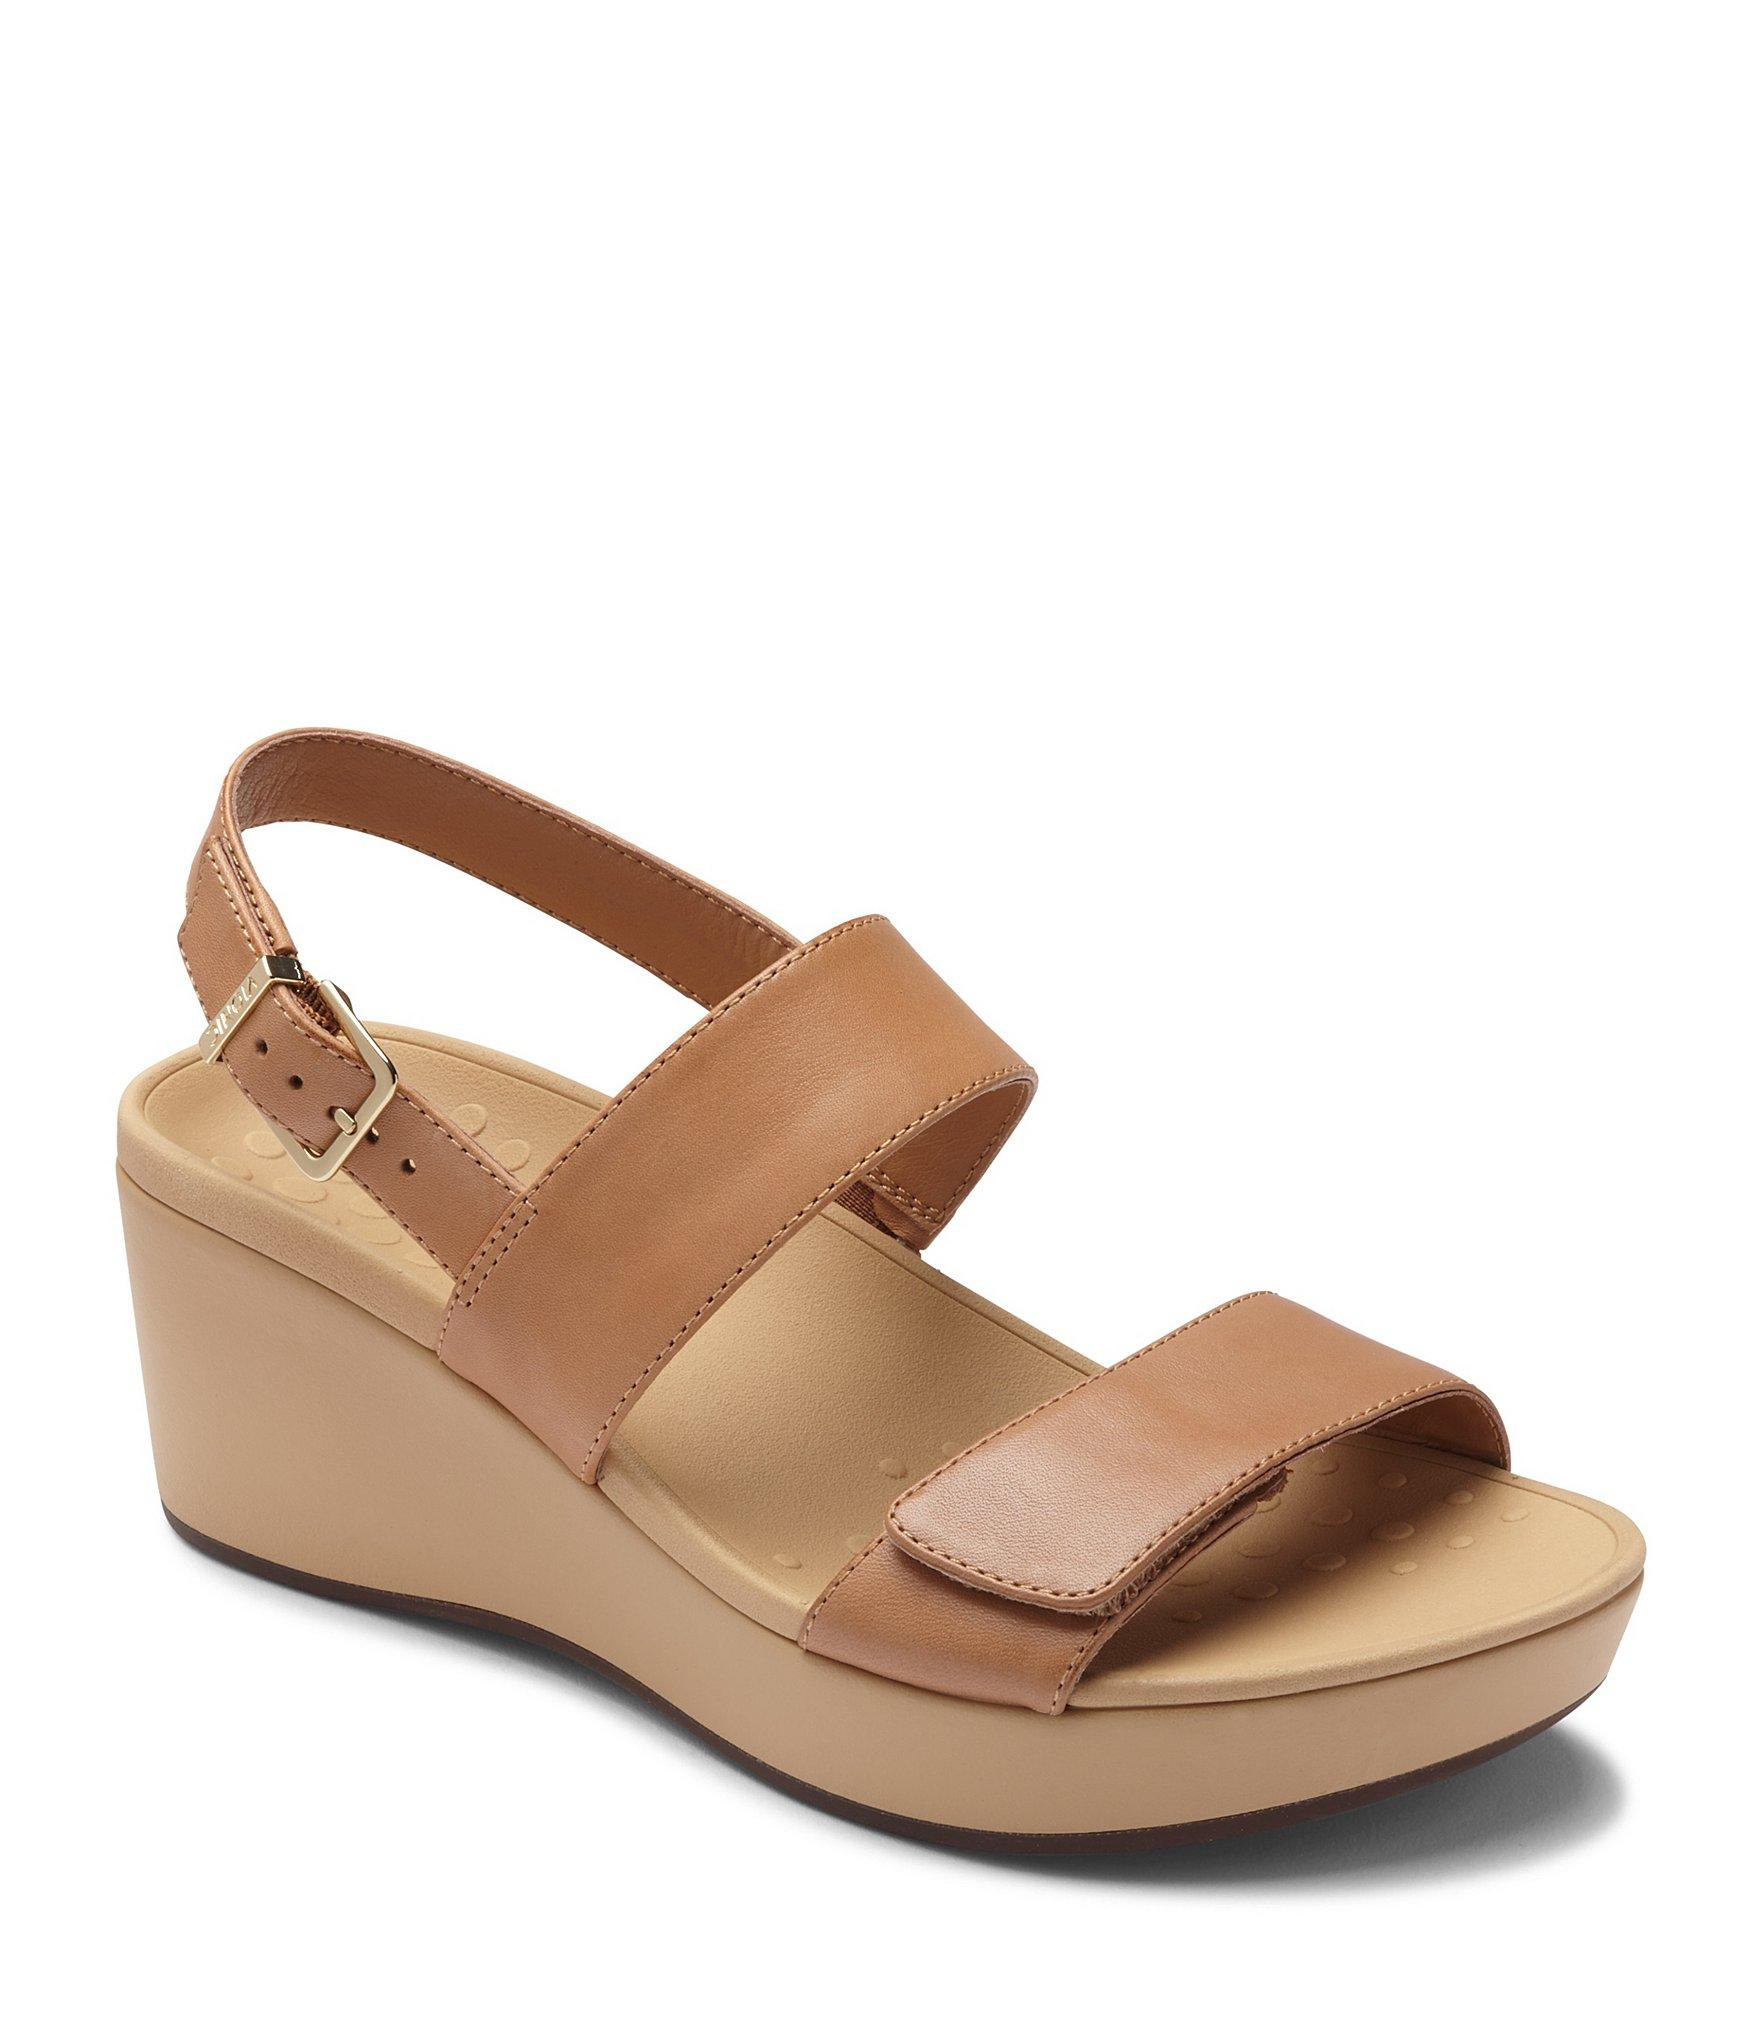 578dc1a02878e Lyst - Vionic Lovell Banded Wedge Sandals in Brown